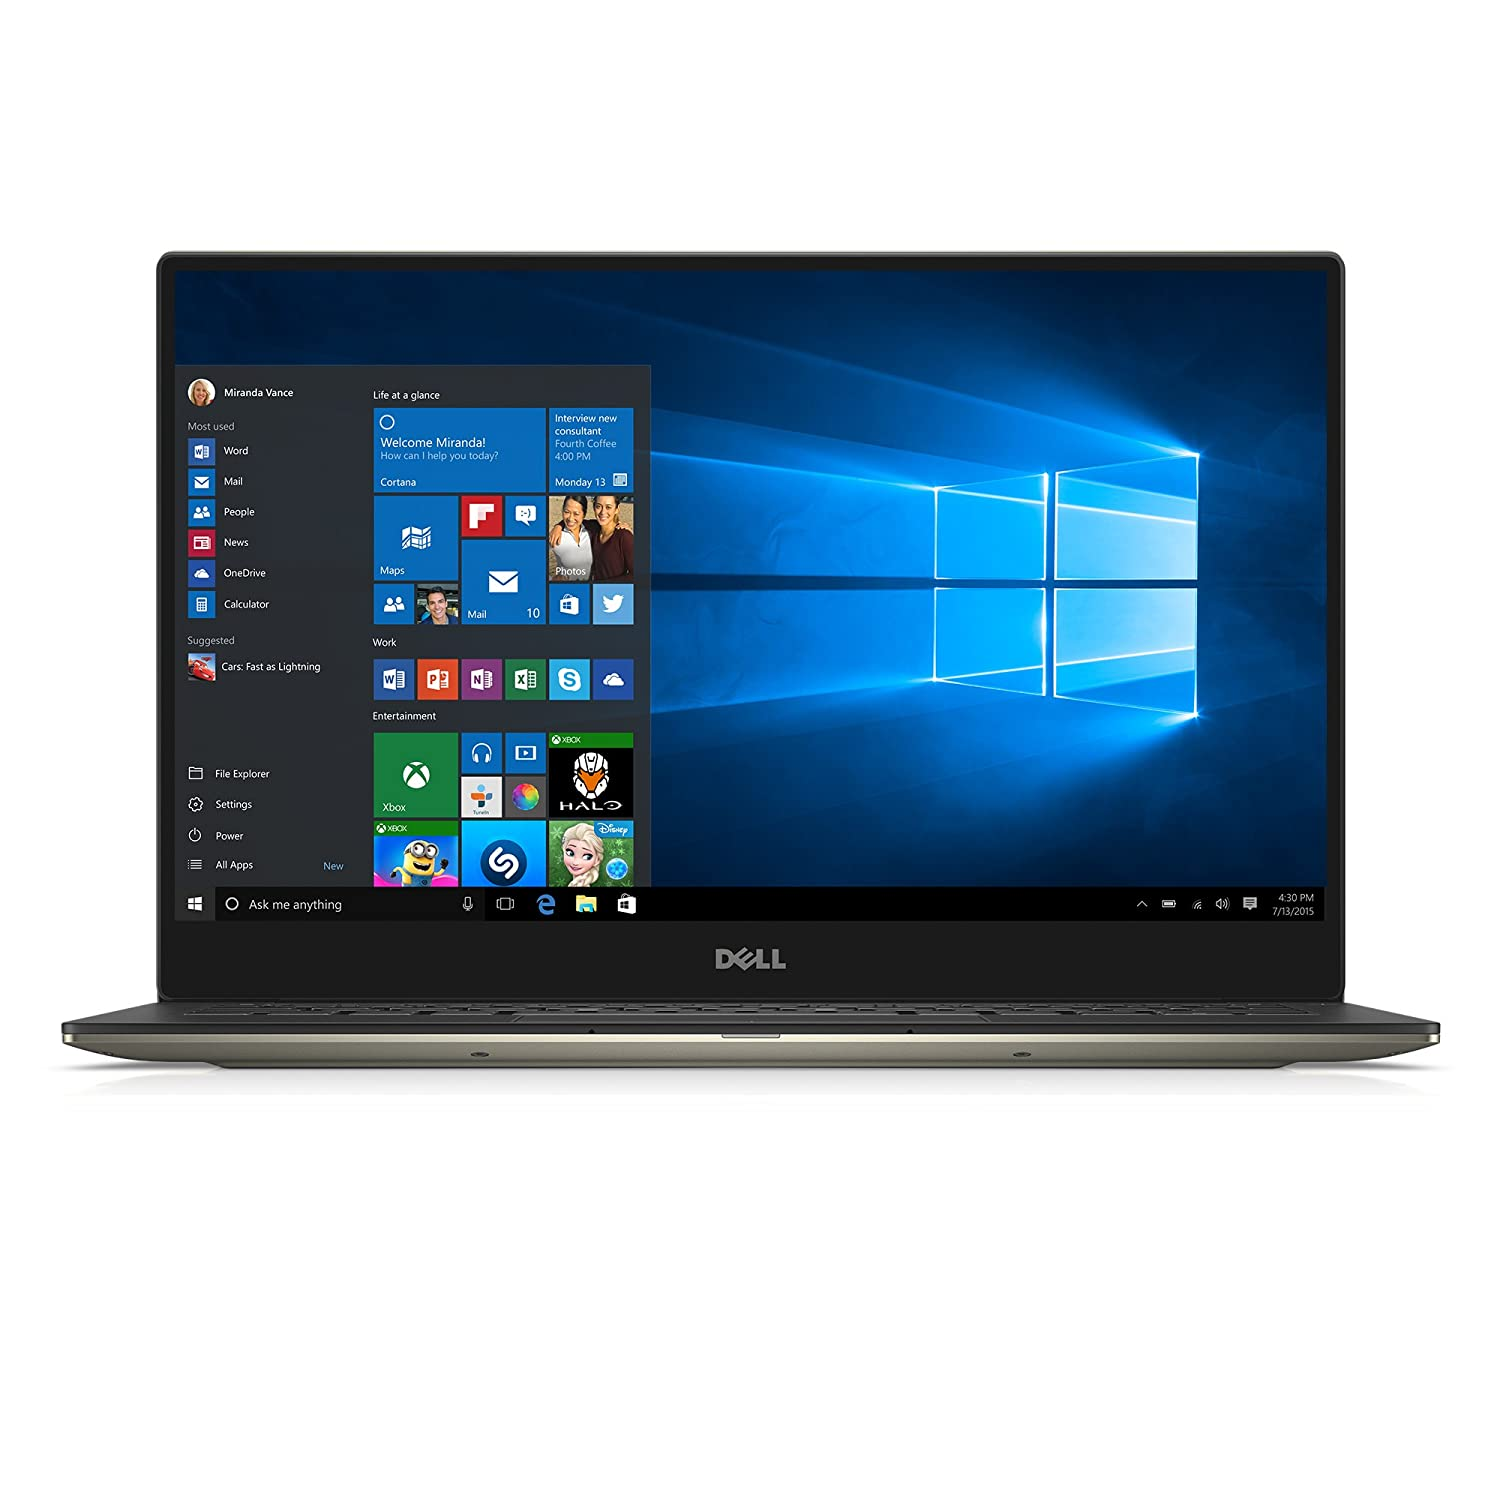 Dell | XPS 13 XPS9350-5342GLD 13.3-Inch QHD+ Touchscreen Laptop | 6th Generation Intel Core i7, 8 GB RAM, 256 GB SSD, Win 10, Microsoft Signature Image | Gold